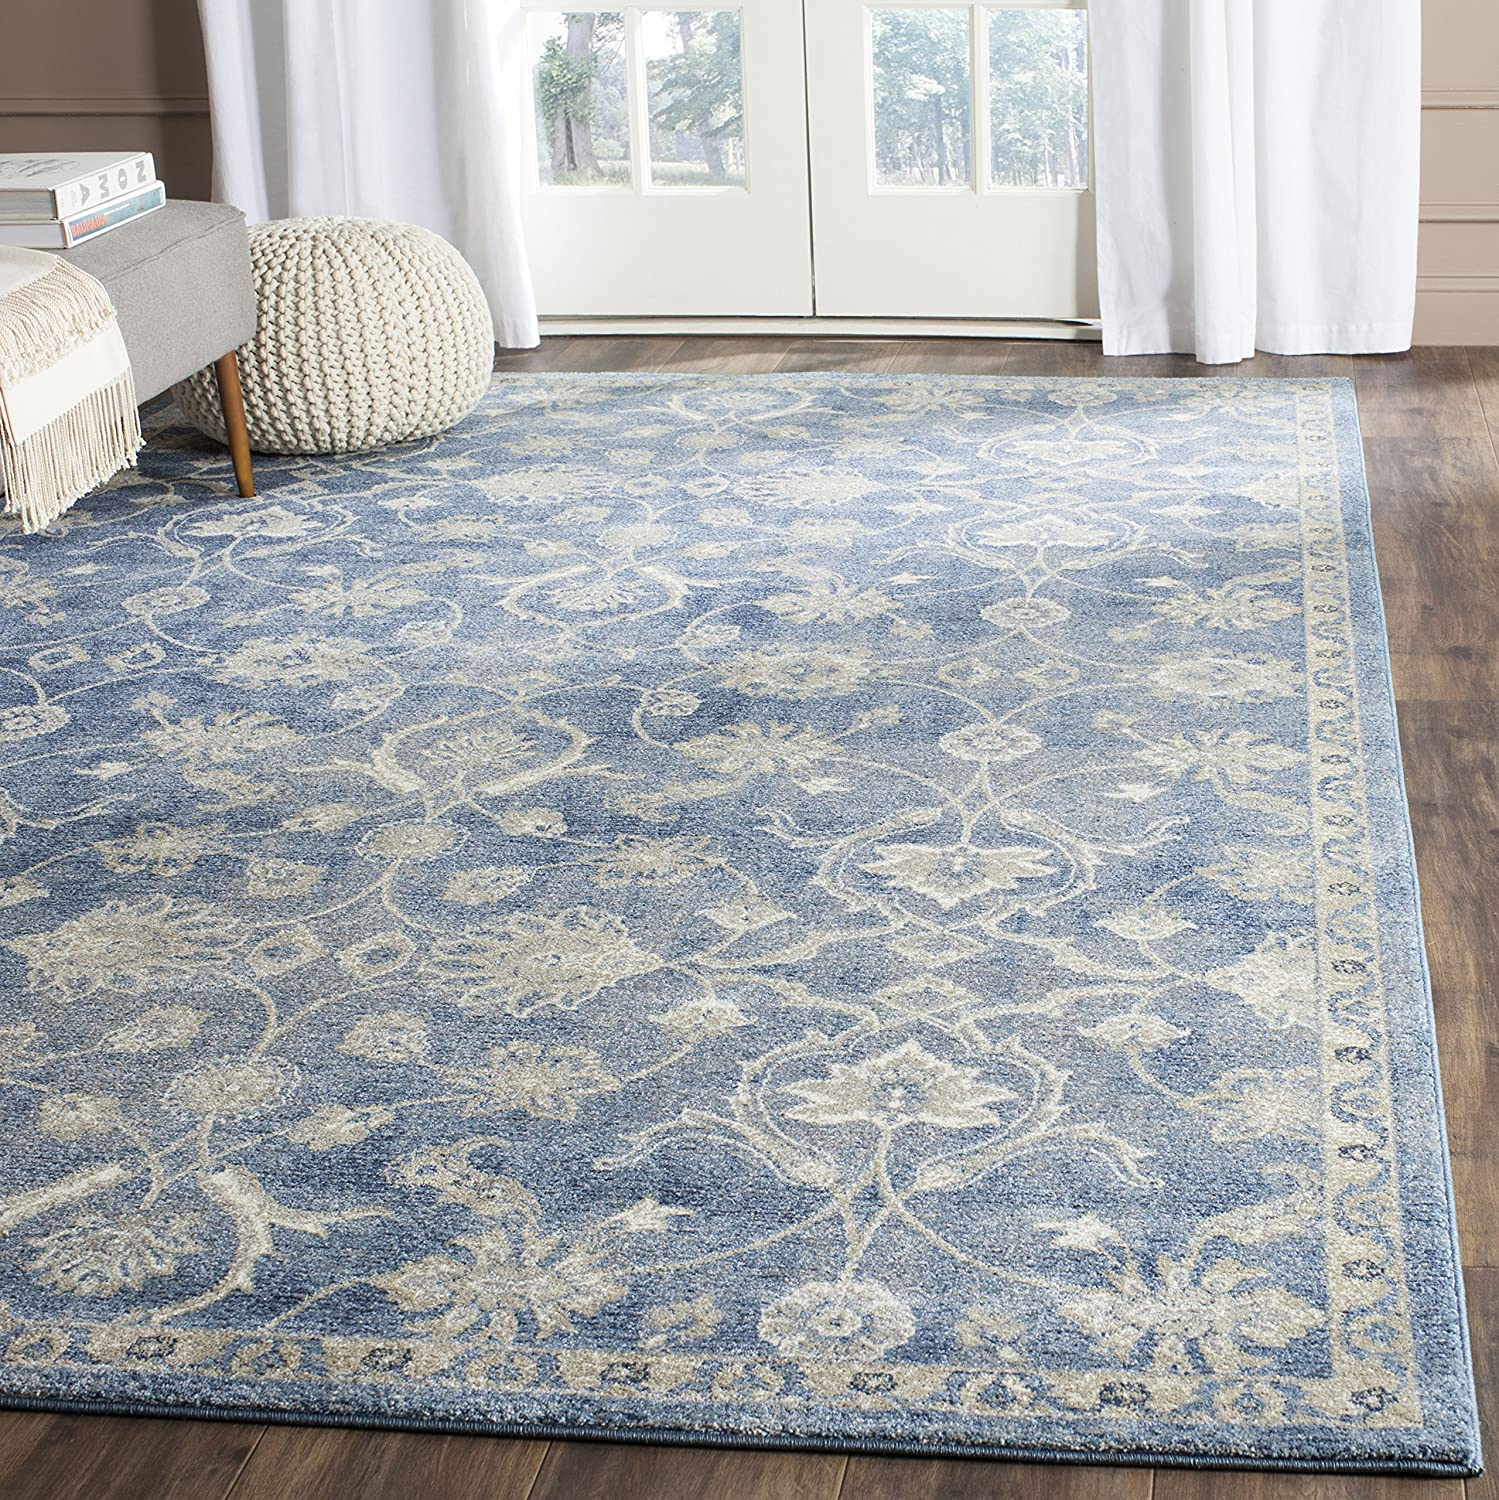 Amazon Com Safavieh Sofia Collection Vintage Blue And Beige